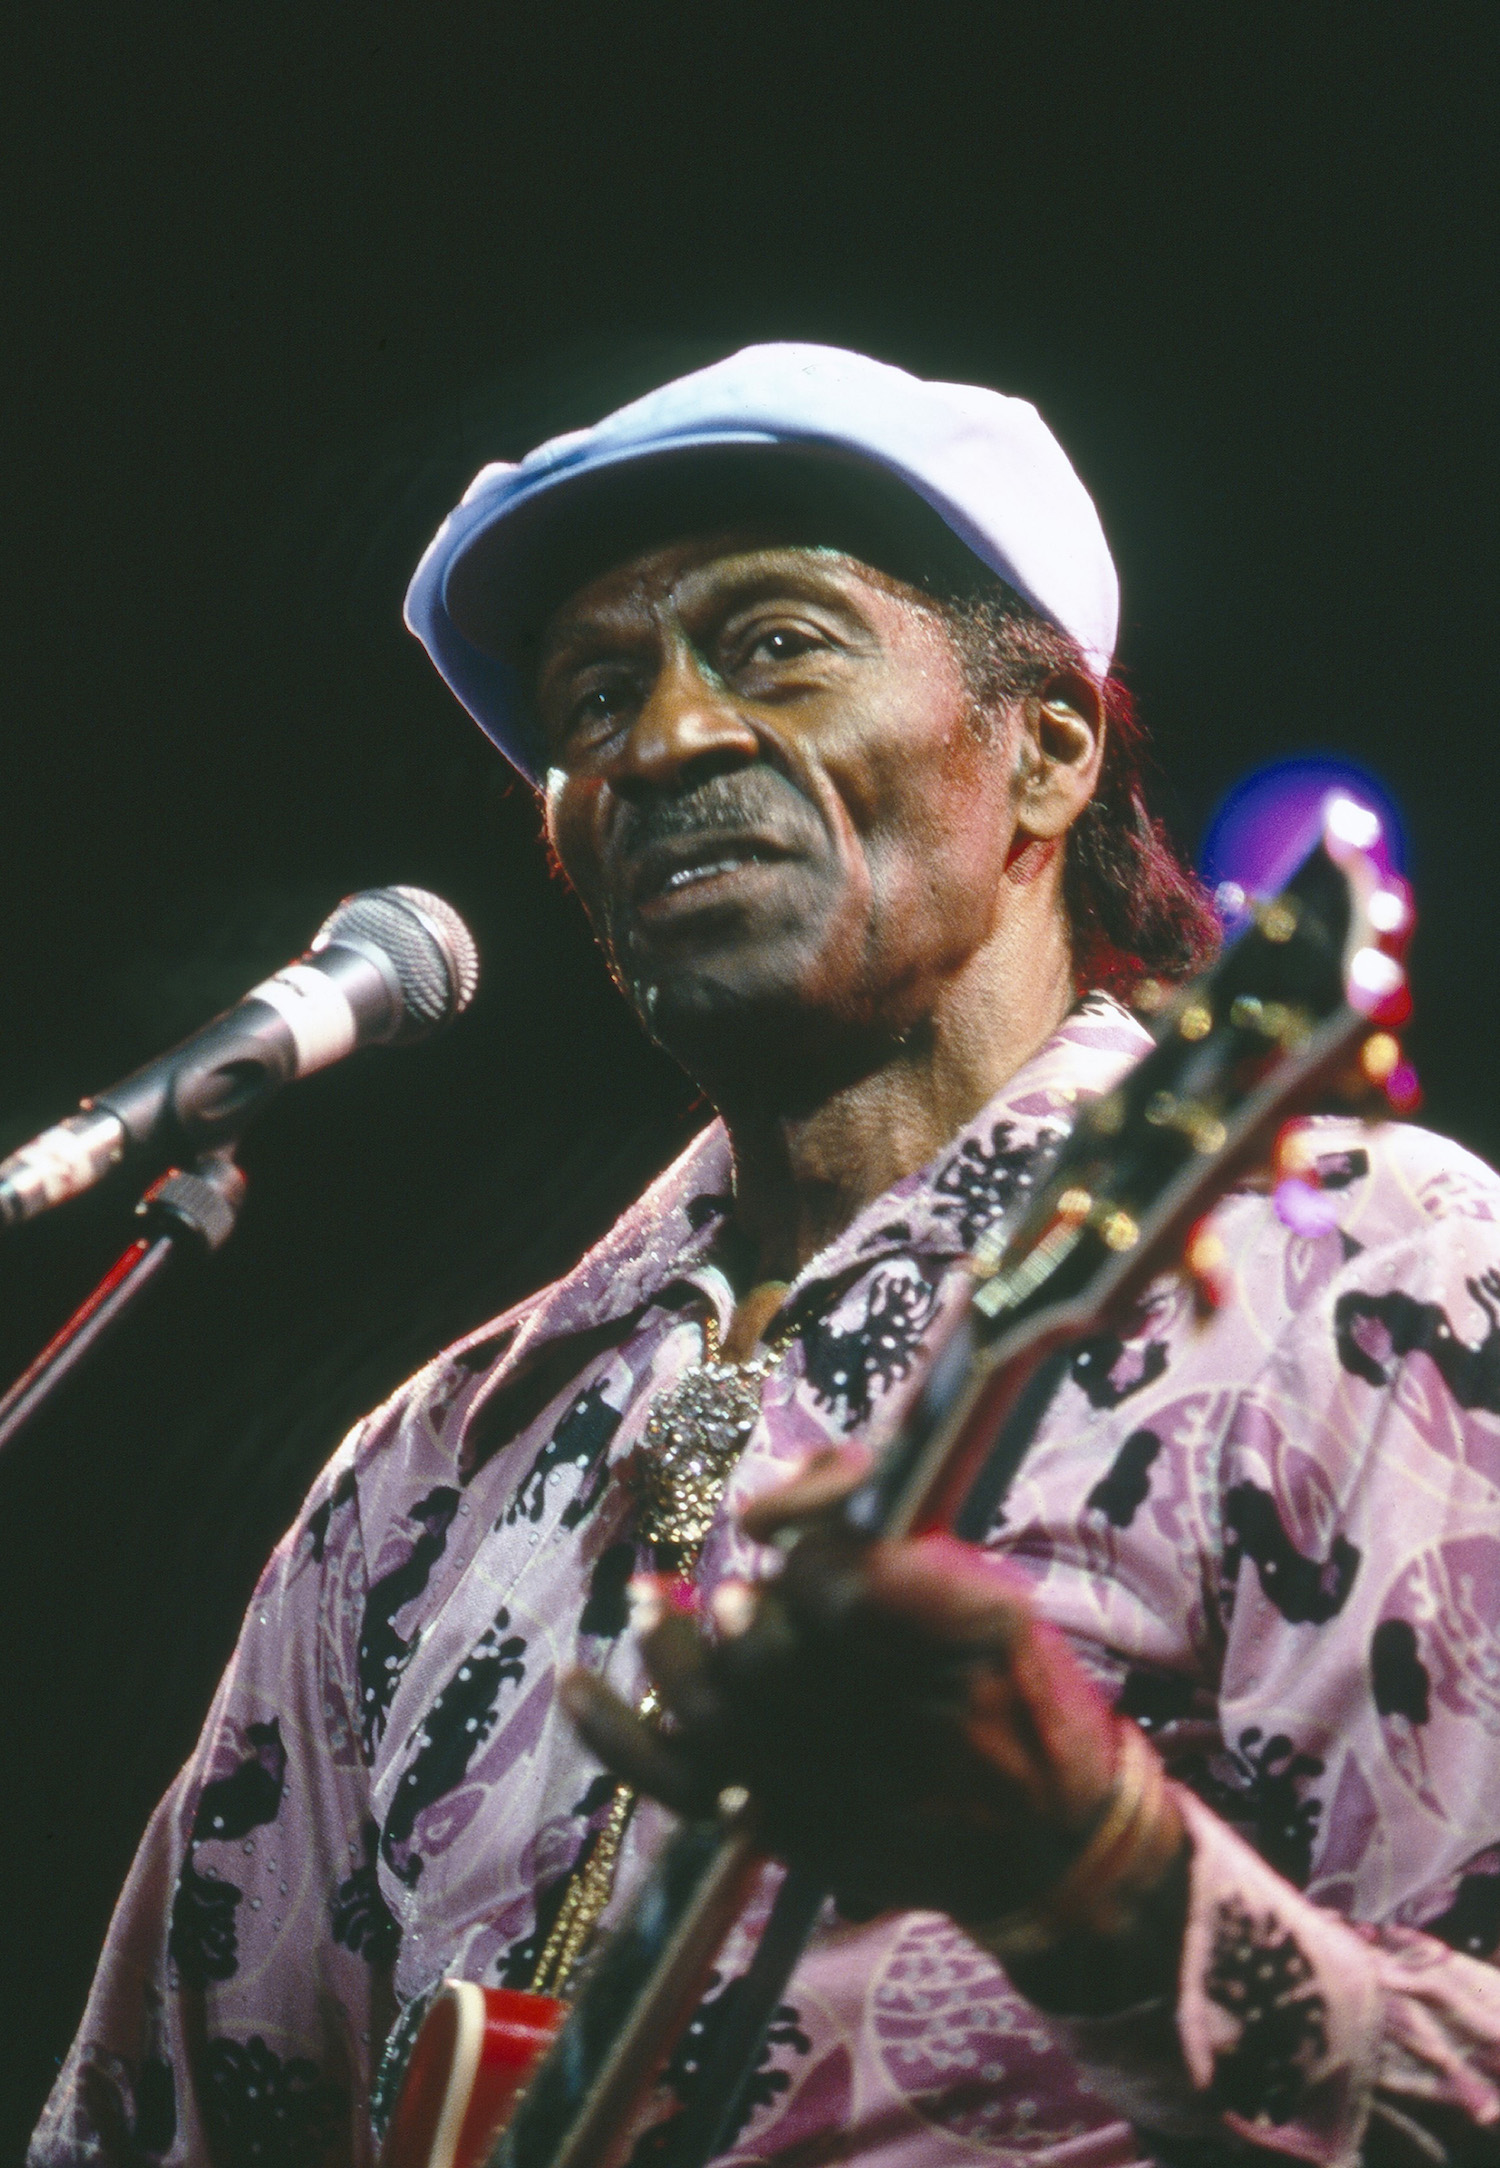 Chuck Berry in concert in London, Britain - 1988 - in his Letterman shirt